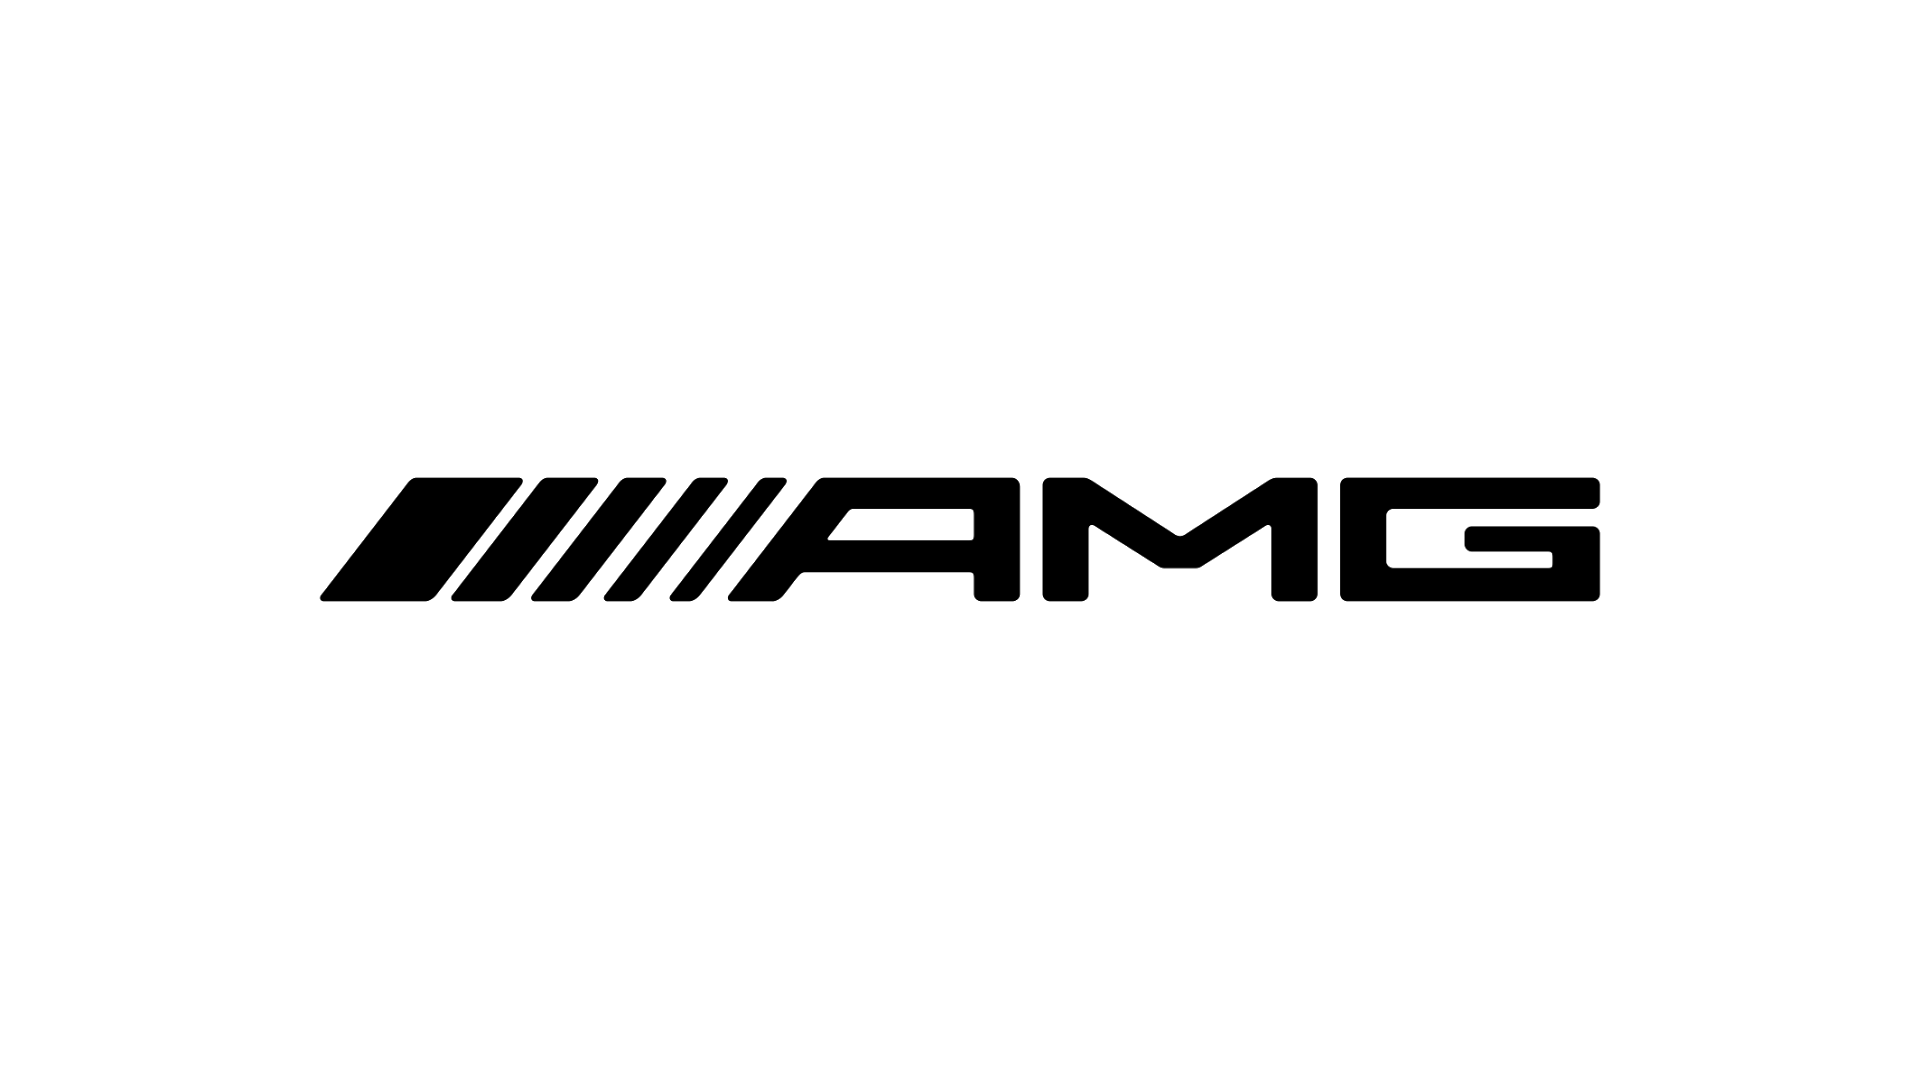 AMG Logo, HD Png, Meaning, Information.